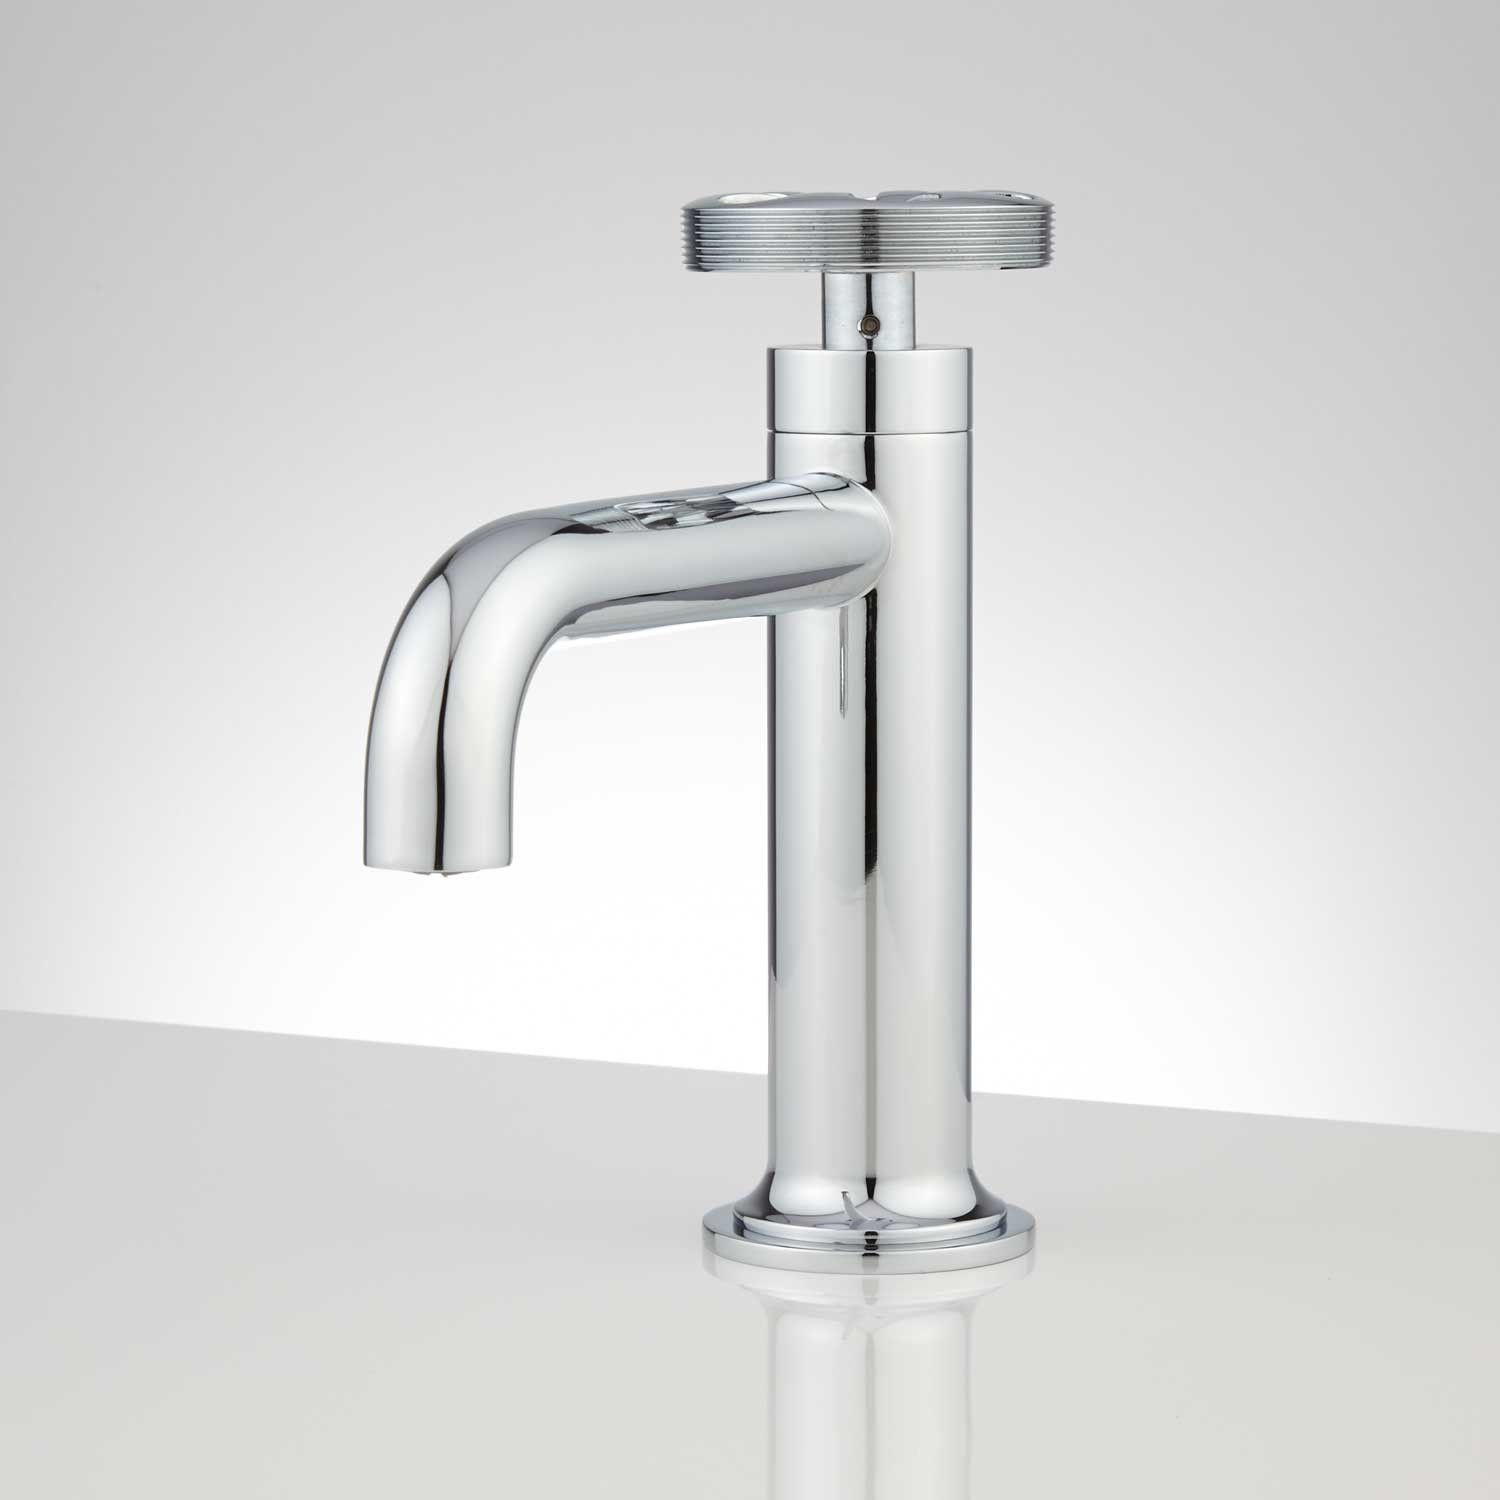 of and faucets covered bellevue solid the including all nickel handles a tarnish faucet kitchen brass restoration polished finish hand lever bridge with made resistant pieces l hardware sprayer are